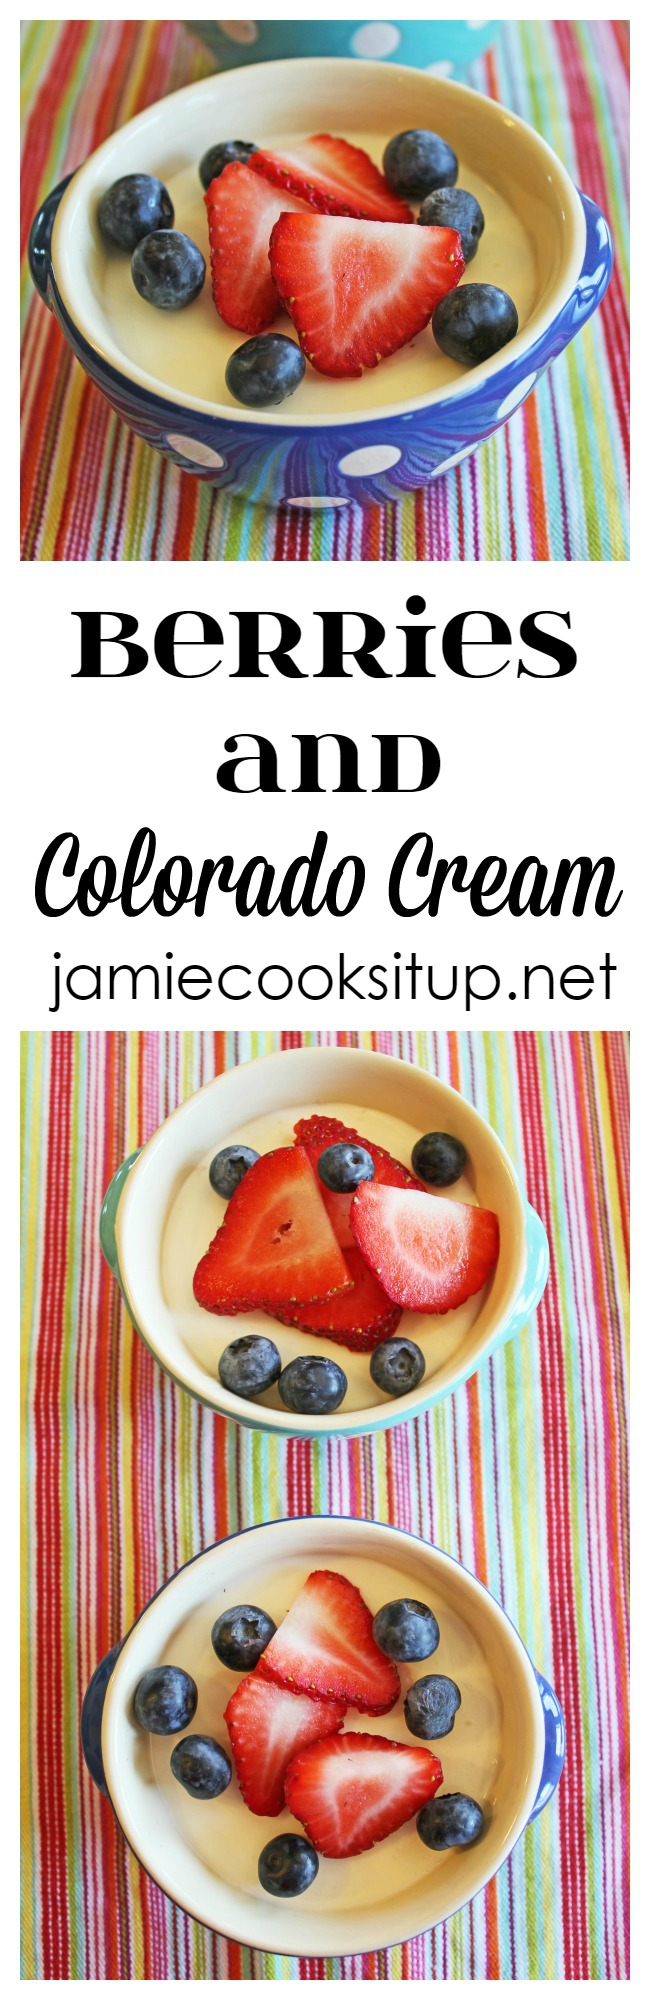 Berries and Colorado Cream from Jamie Cooks It Up!